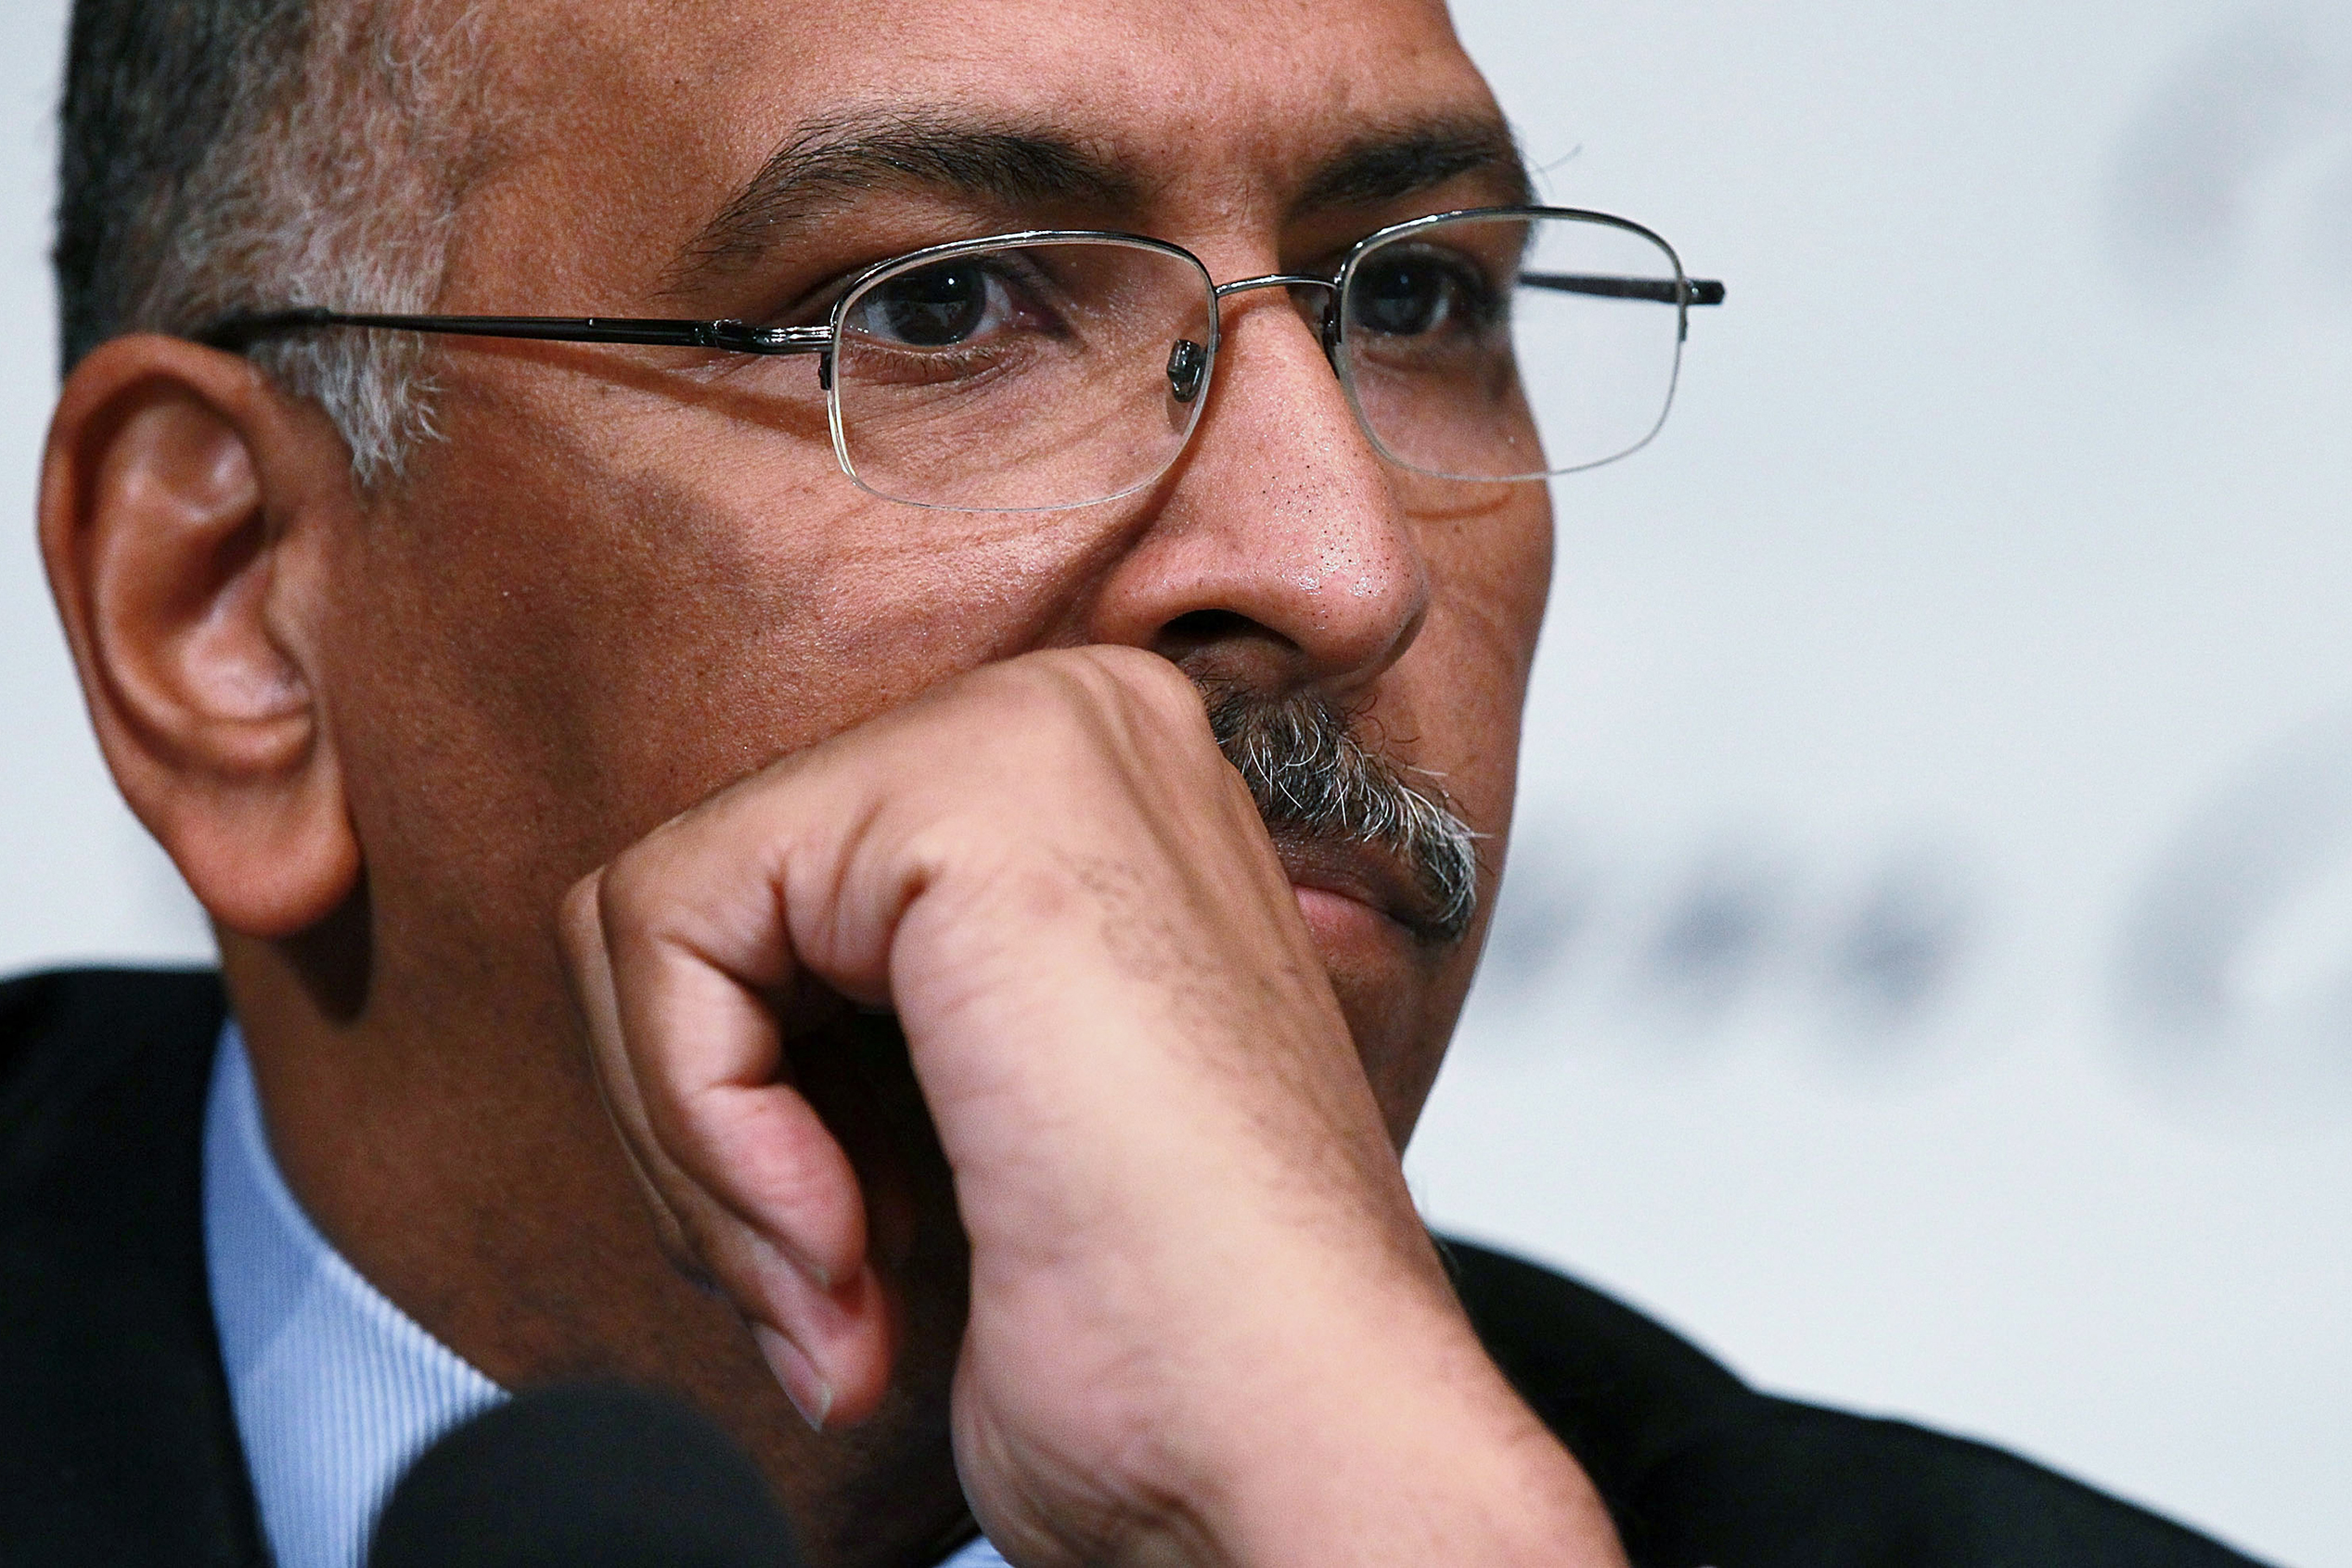 Former Republican National Committee Chairman Michael Steele participates in a debate between chairmanship candidates of the RNC, on Jan. 3, 2011 in Washington, D.C.